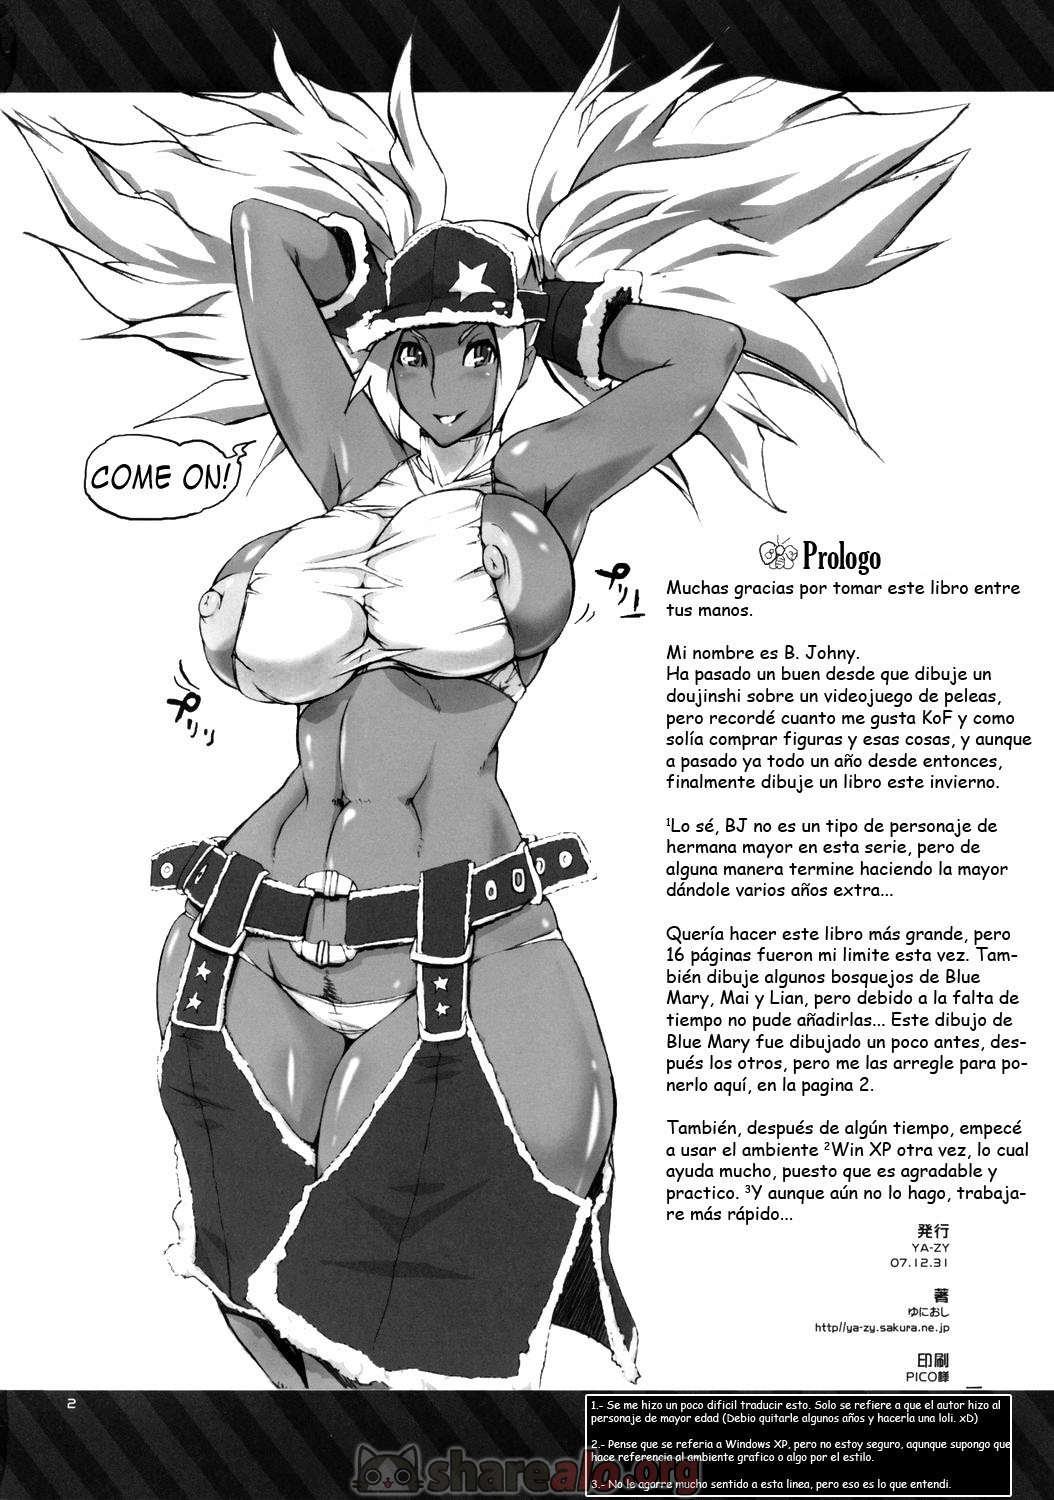 [ Futeki na Chikyuu sen Dokuro gou (King of Fighters) ]: Comics Porno Manga Hentai [ 7aGsrHO8 ]